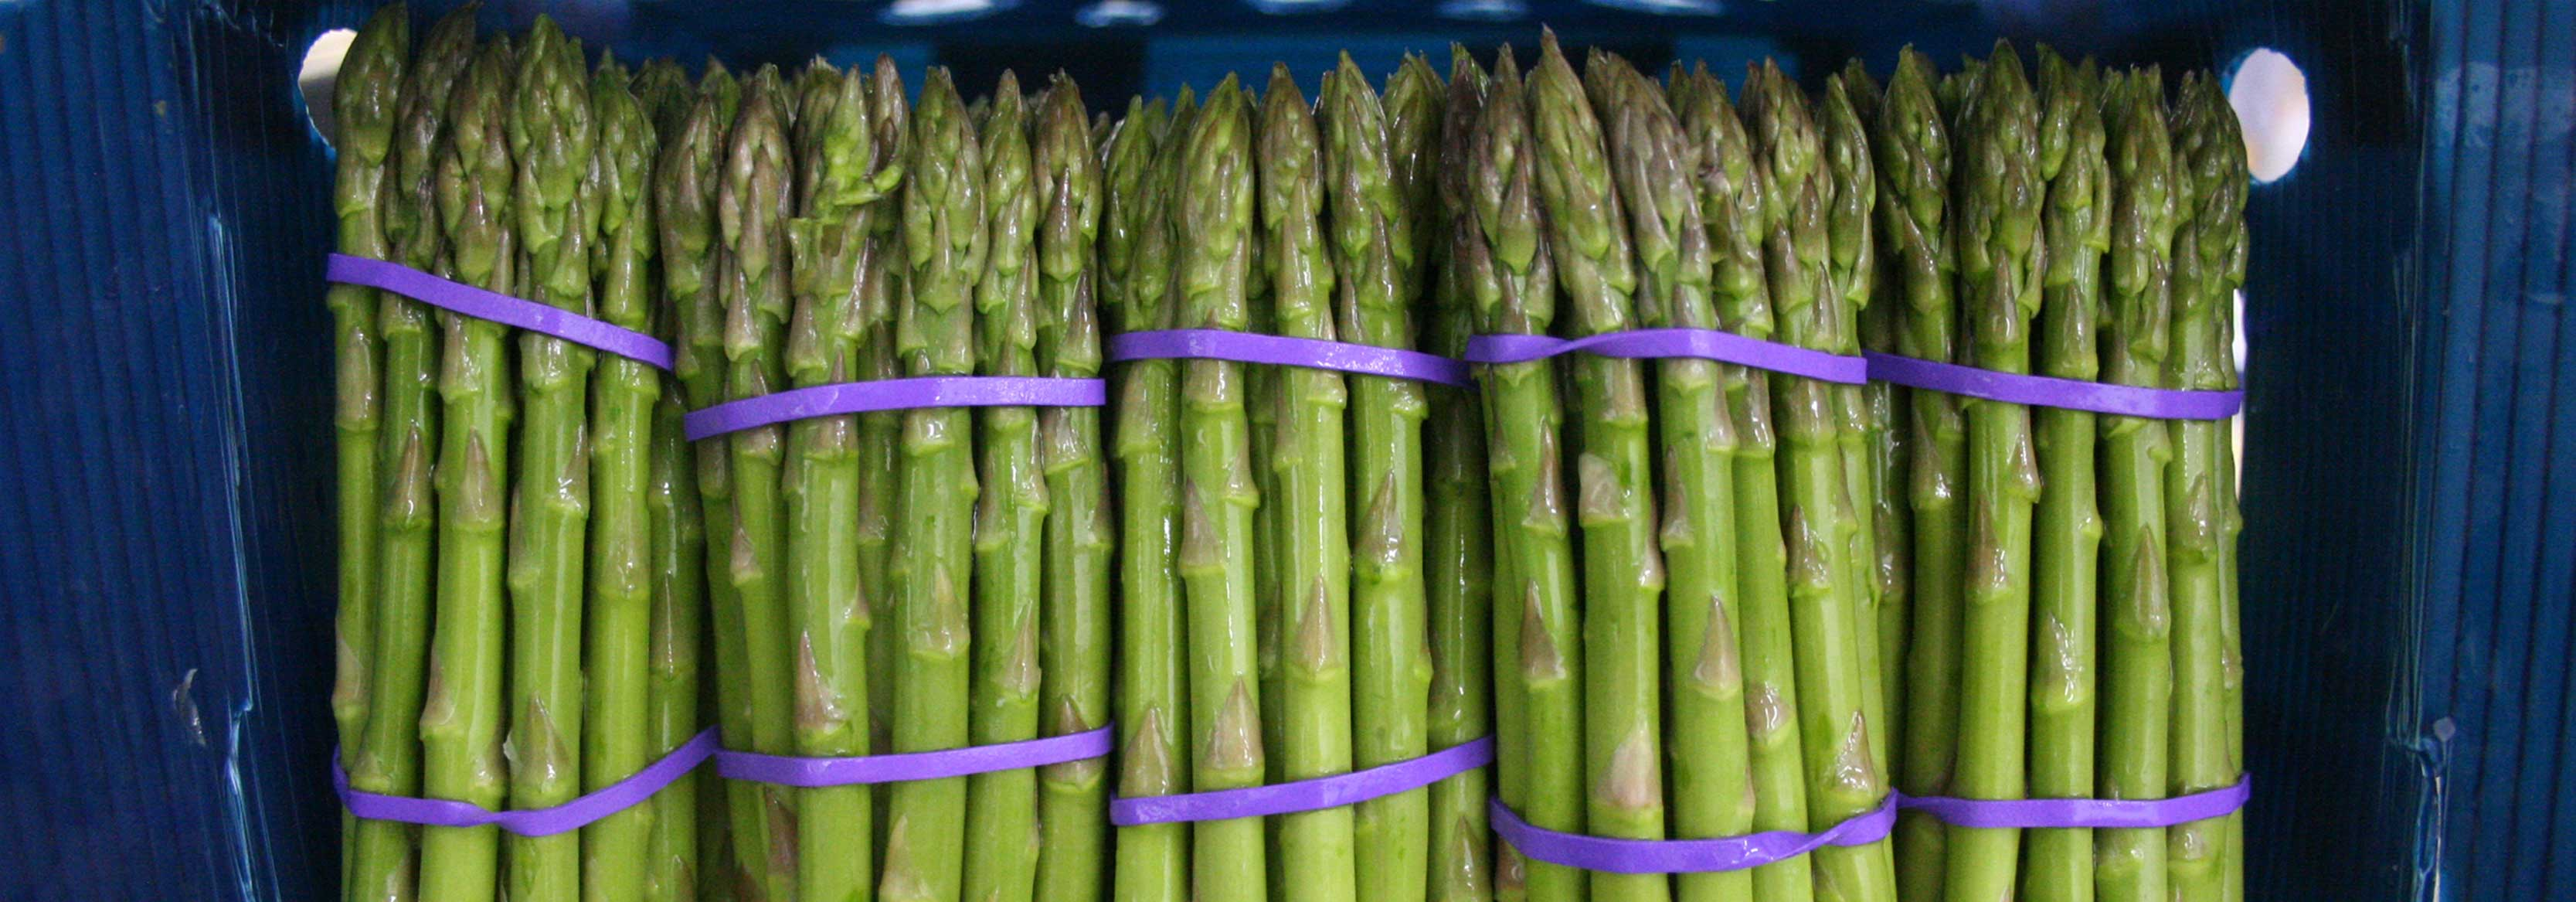 Photograph of Asparagus spears boxed and ready for shipping by the Barfoots Nazca farm in Peru